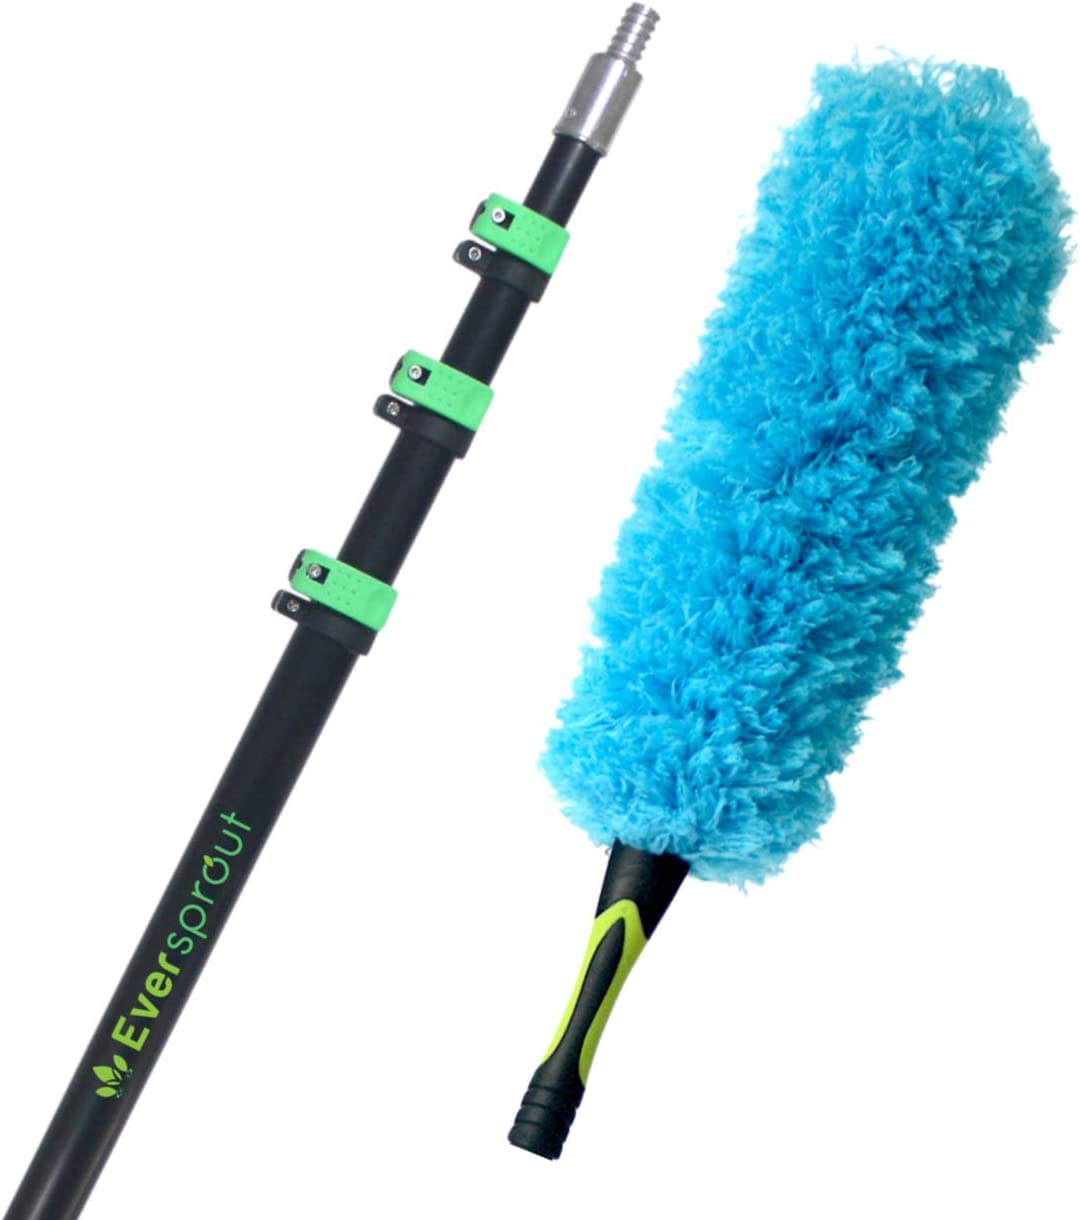 EVERSPROUT 7-to-26 Foot Flexible Microfiber Feather Duster and Extension Pole Combo (30+ Foot Reach) | Heavy Duty, High-Grade Aluminum, 4-Stage Telescopic Pole | Extra Long 24-inch Feather Duster